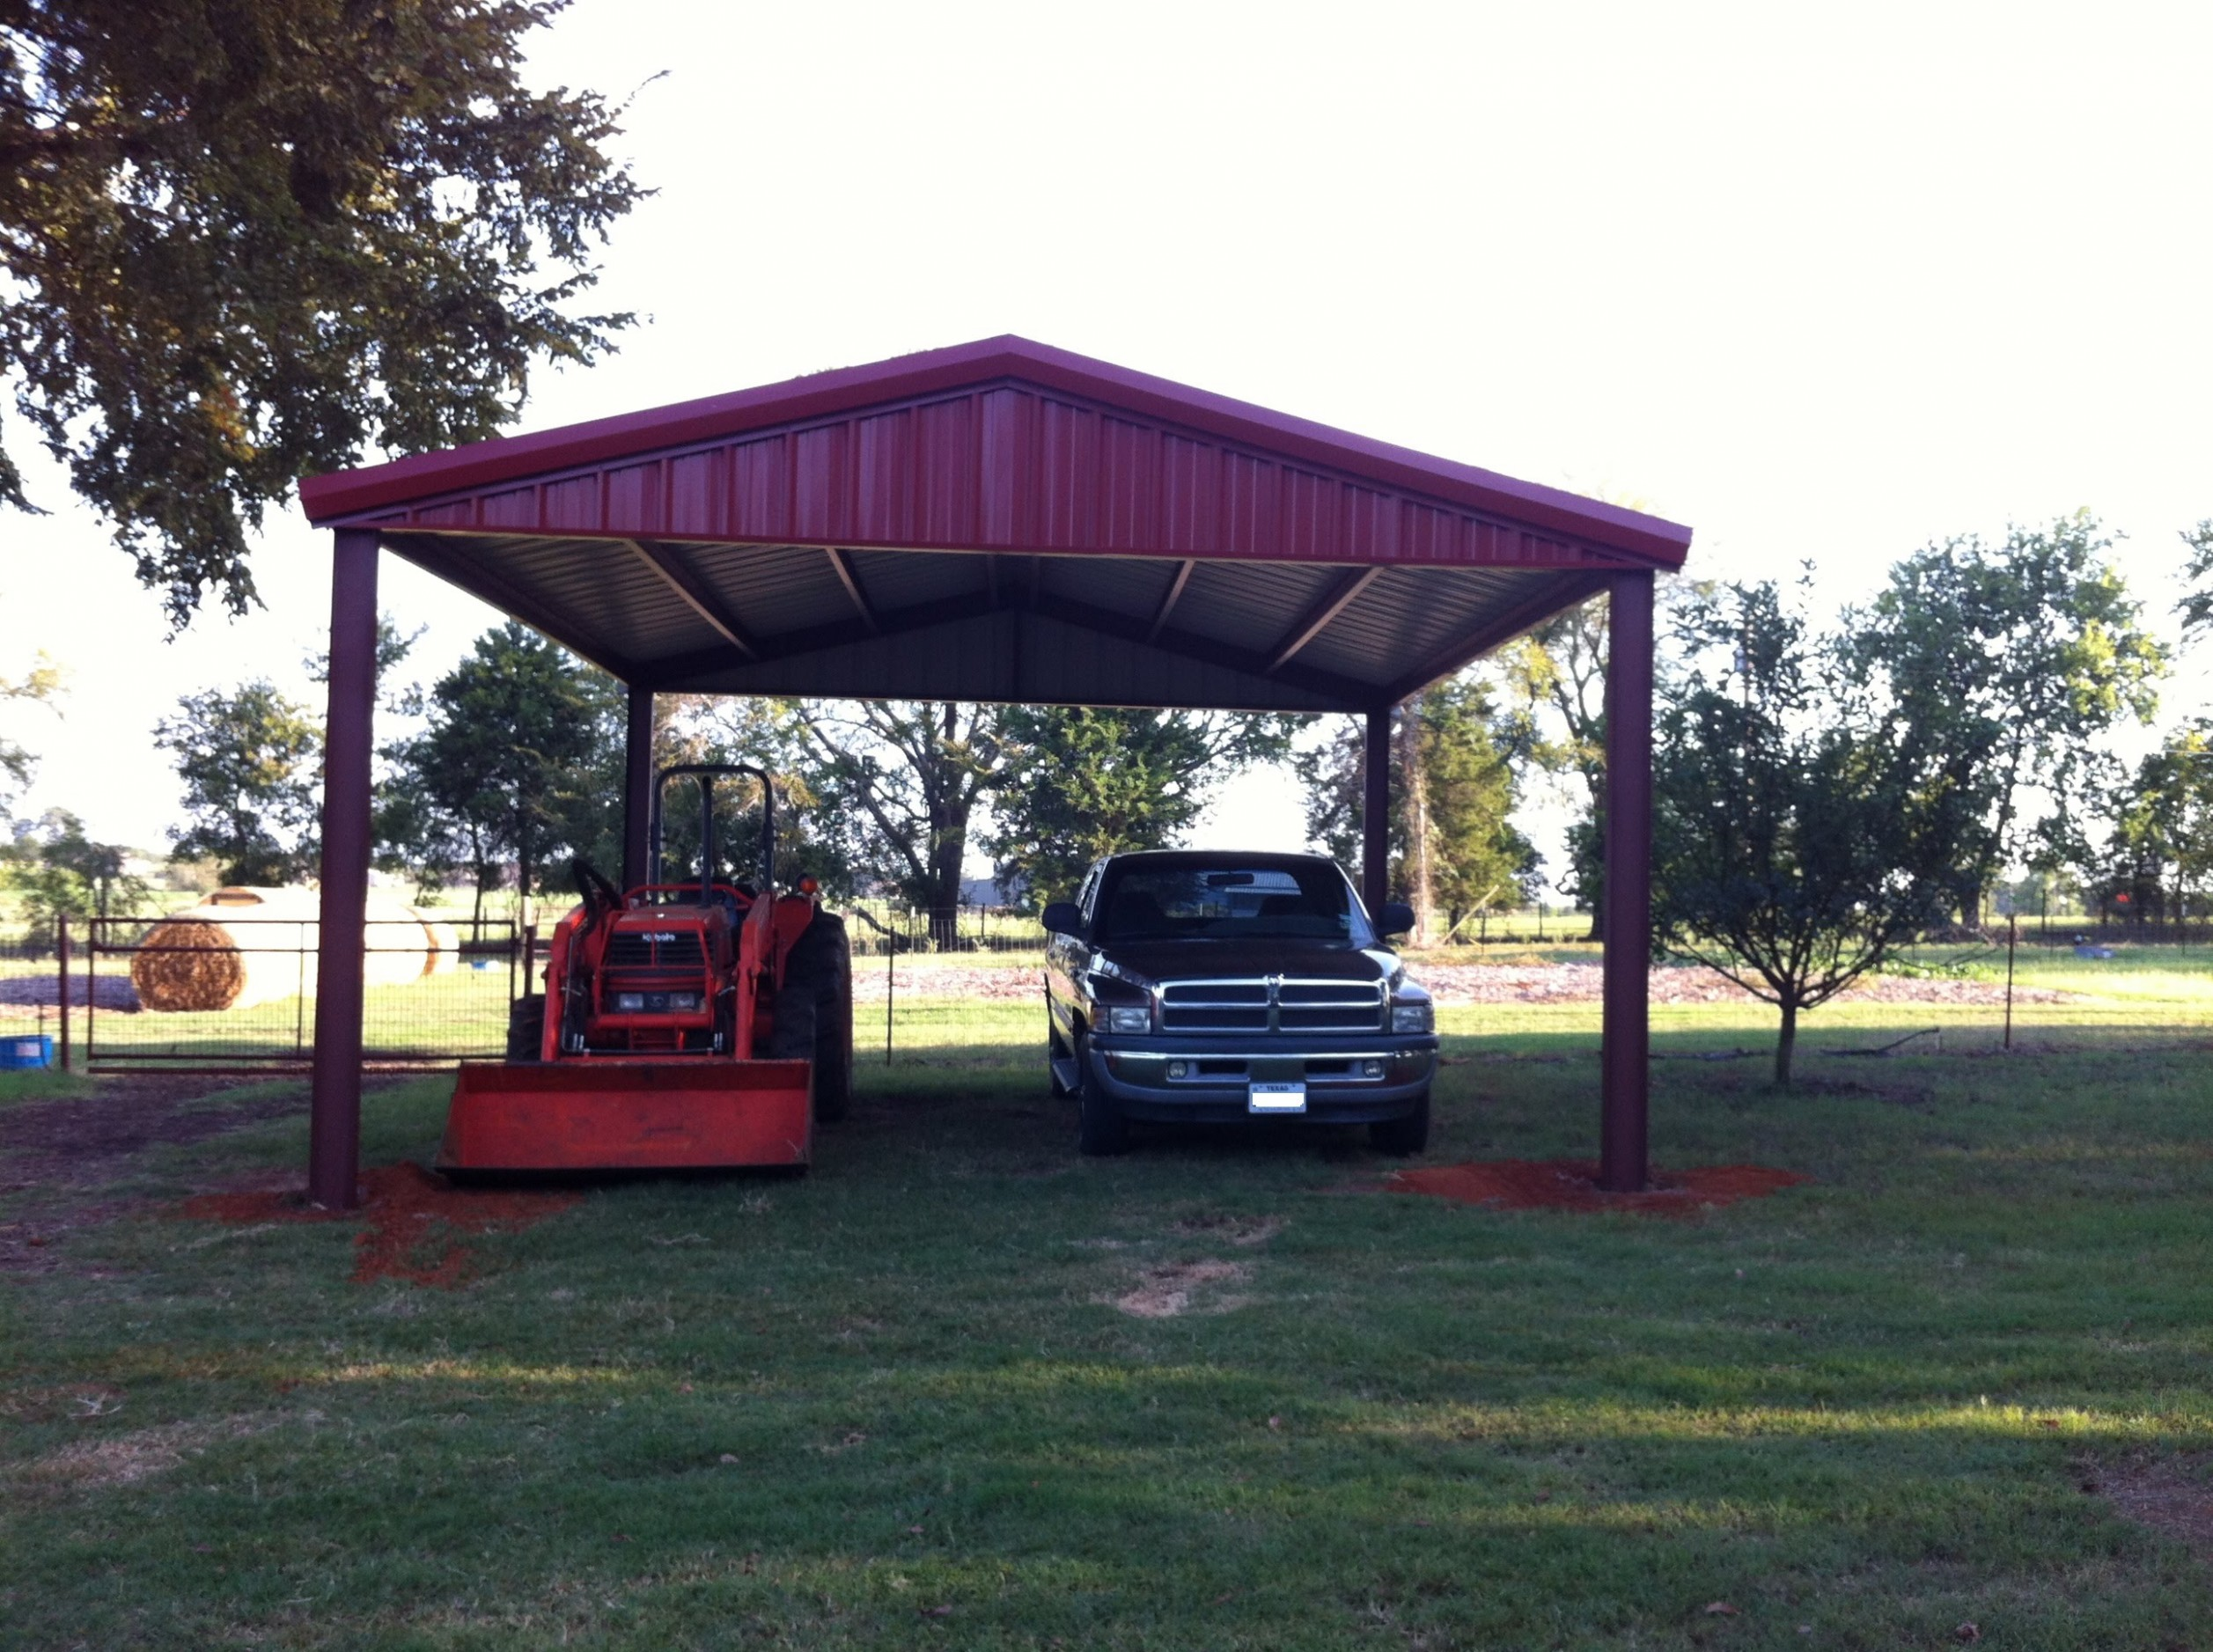 1517657582-how-to-build-an-all-metal-carport-from-start-to-finish-youtube-free-standing-metal-carport.jpg